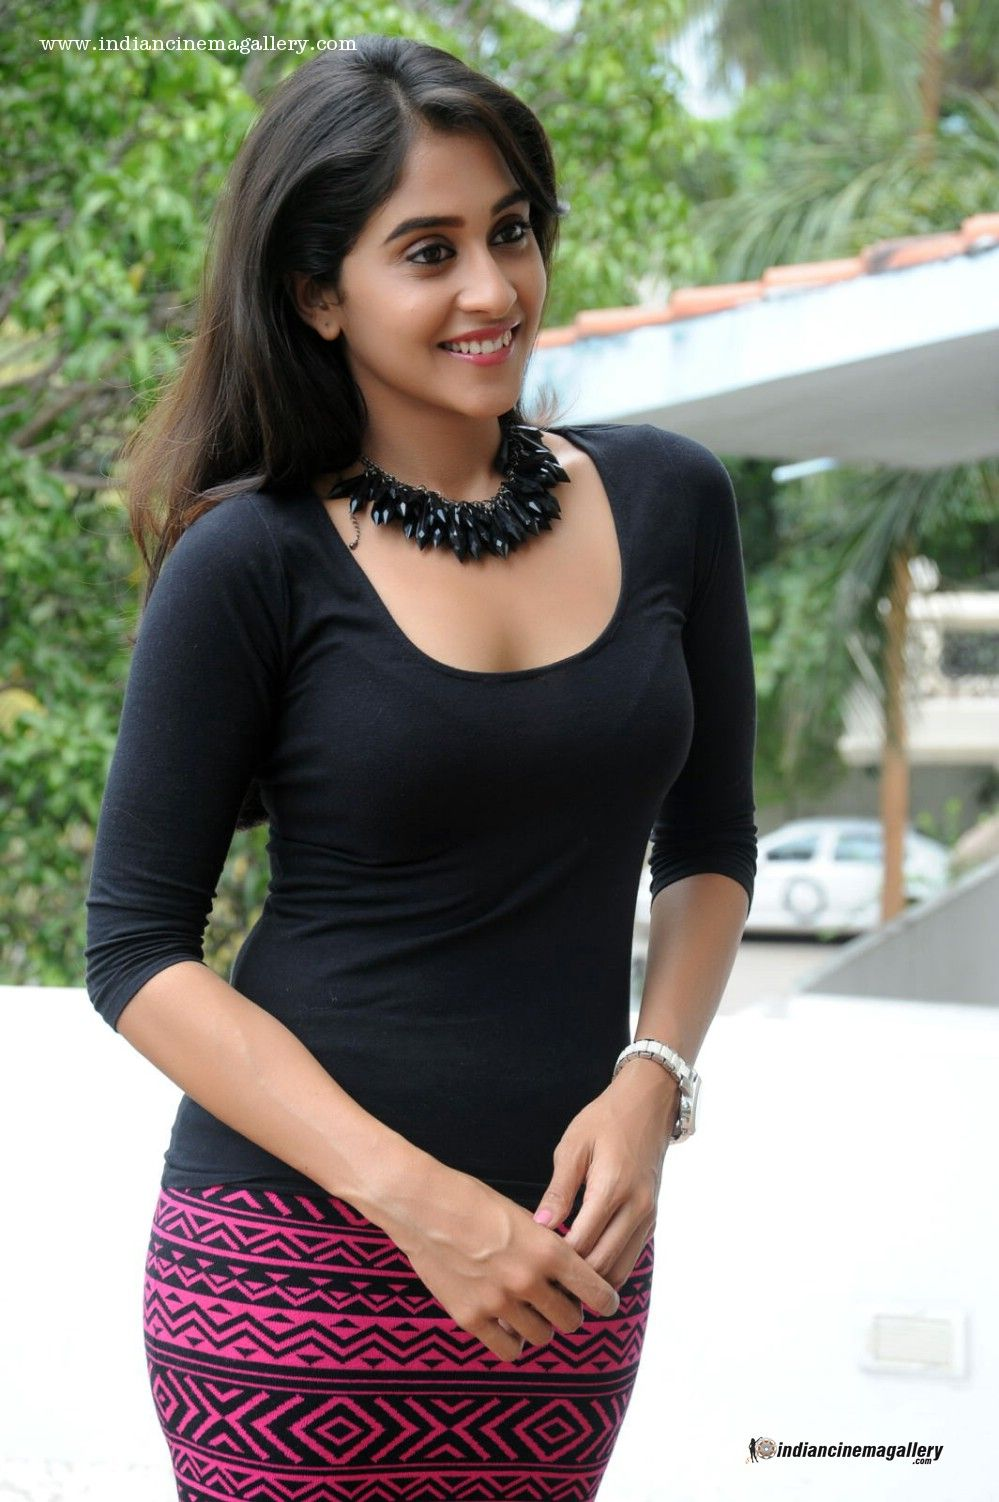 The Hot And Sexy South Indian Girl Model Actress Regina Cassandra Black Sexy In Skirt And Top Very Seducing Pics That Will So Erotic To See